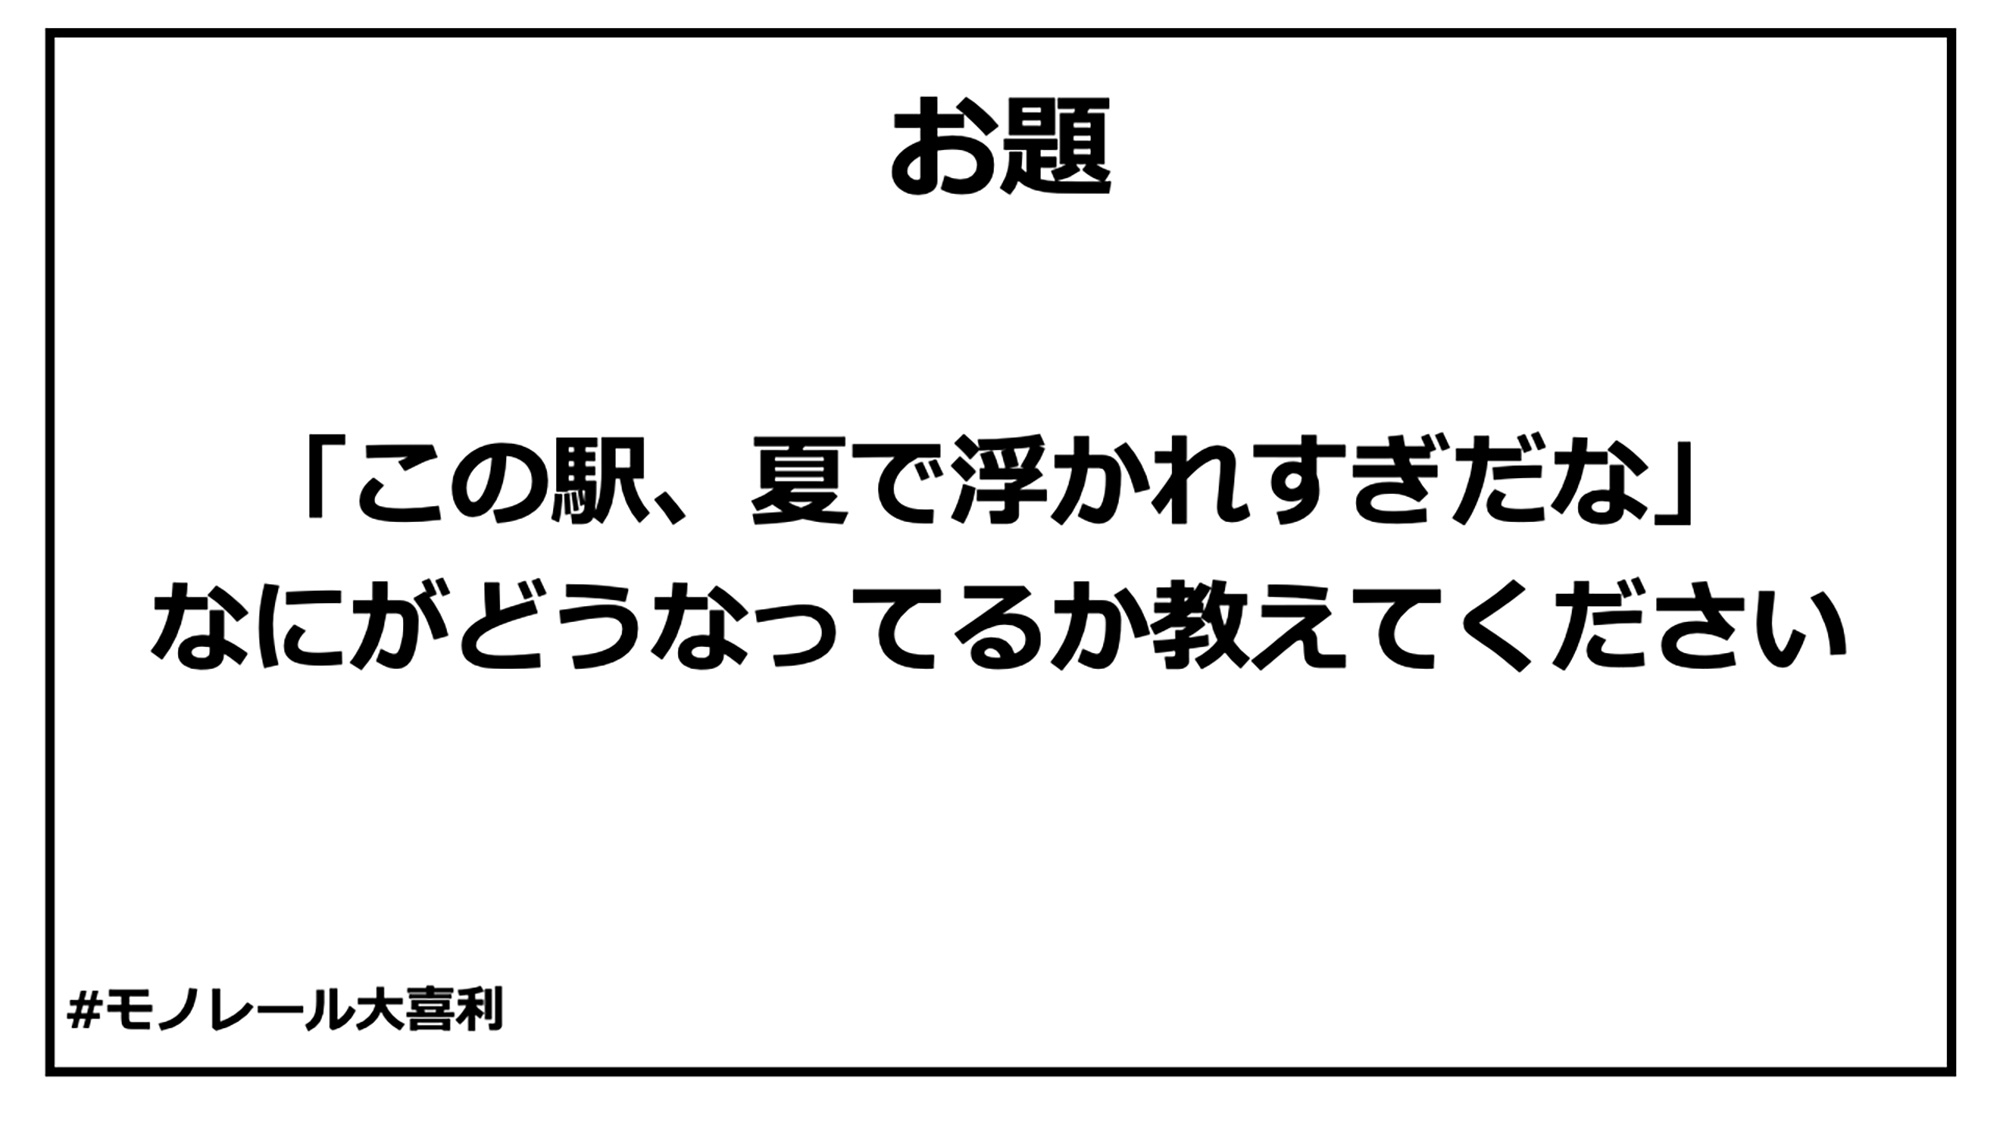 ogiri_answer_26_1.jpg